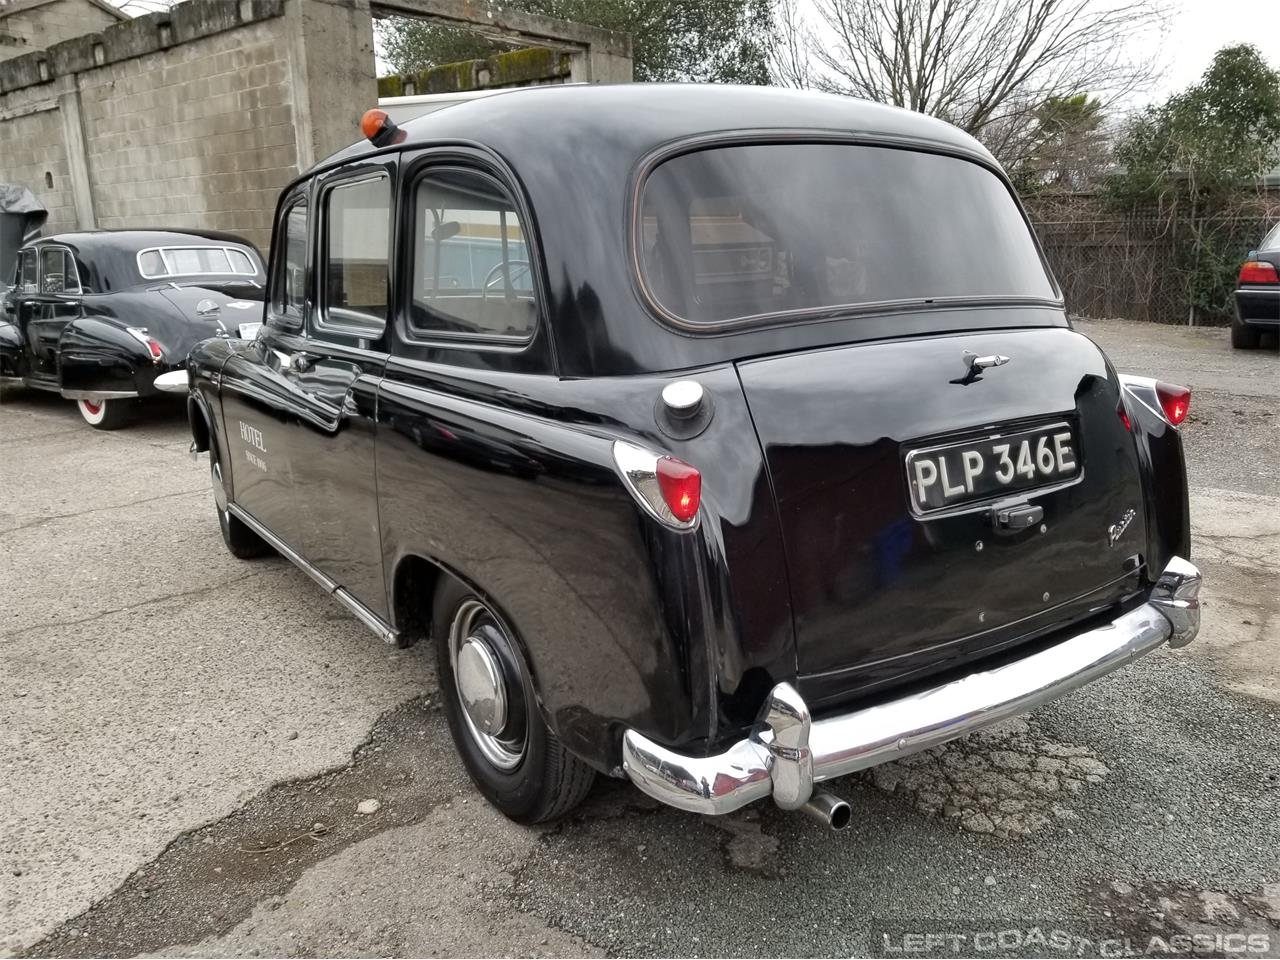 Large Picture of '67 FX4 Taxi Cab - $12,500.00 - PKBX